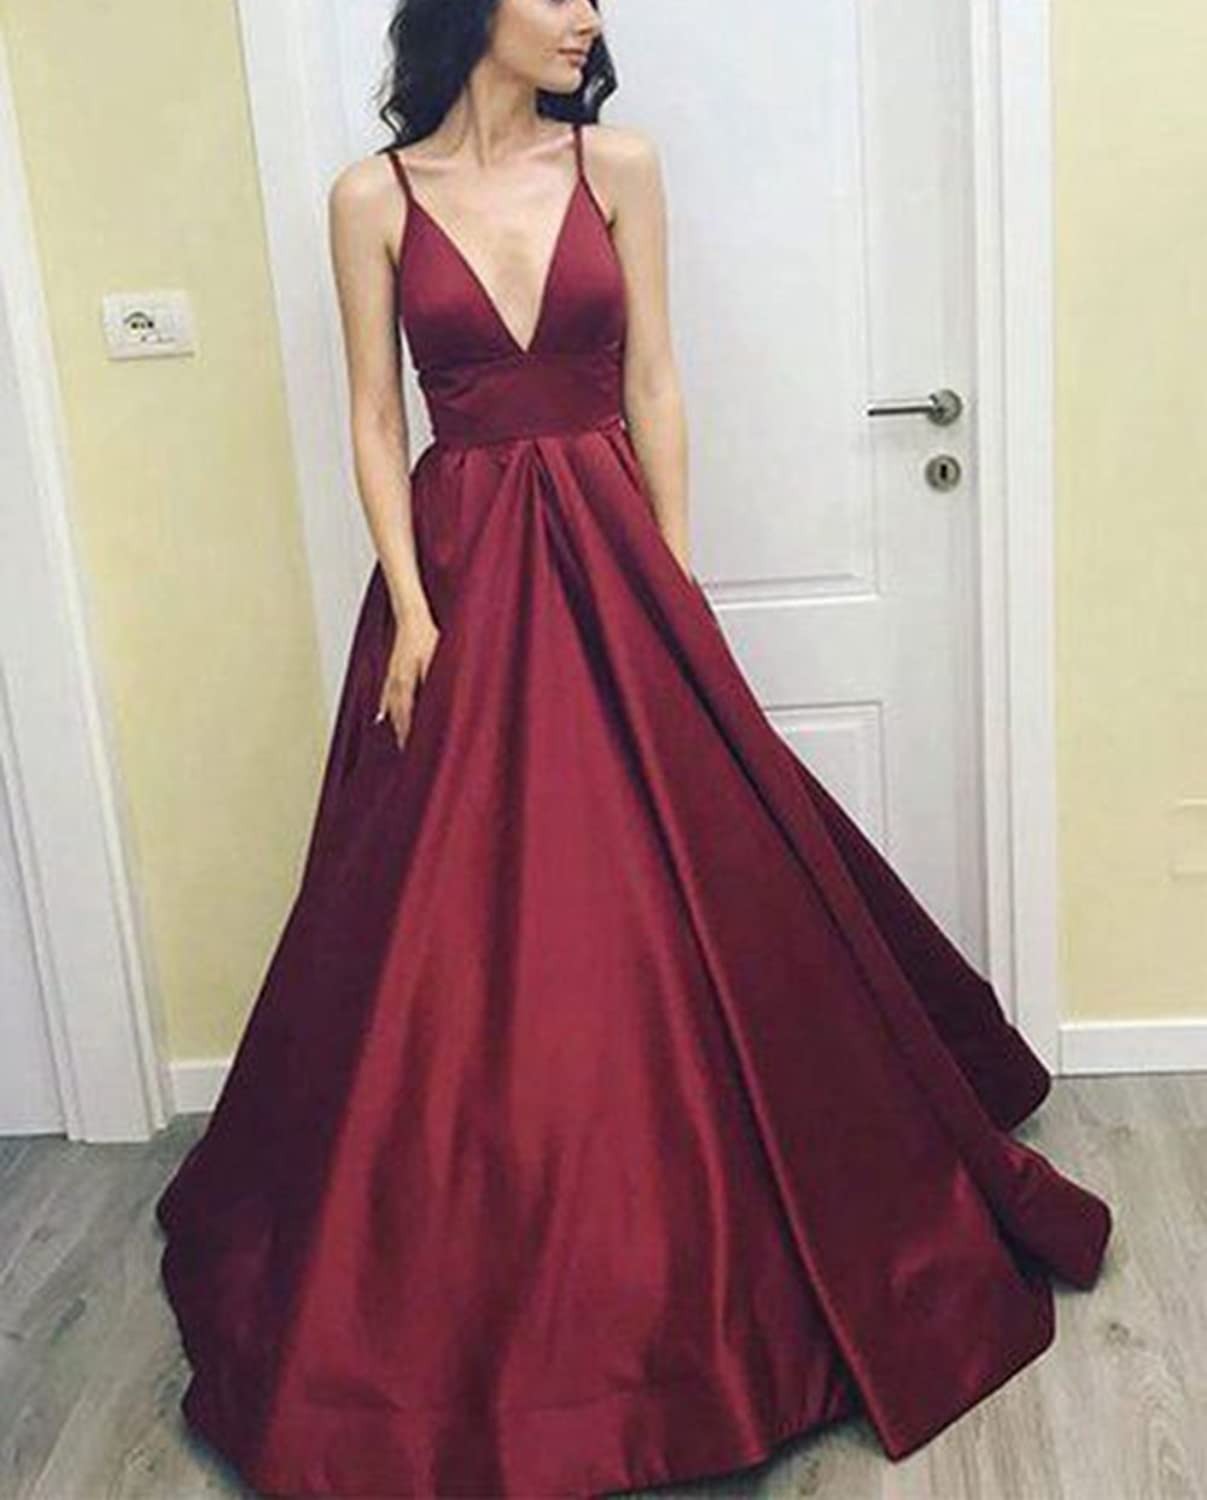 2018 Womens Sexy Burgundy Prom Dress A line Long Gala Dresses Vestidos at Amazon Womens Clothing store: